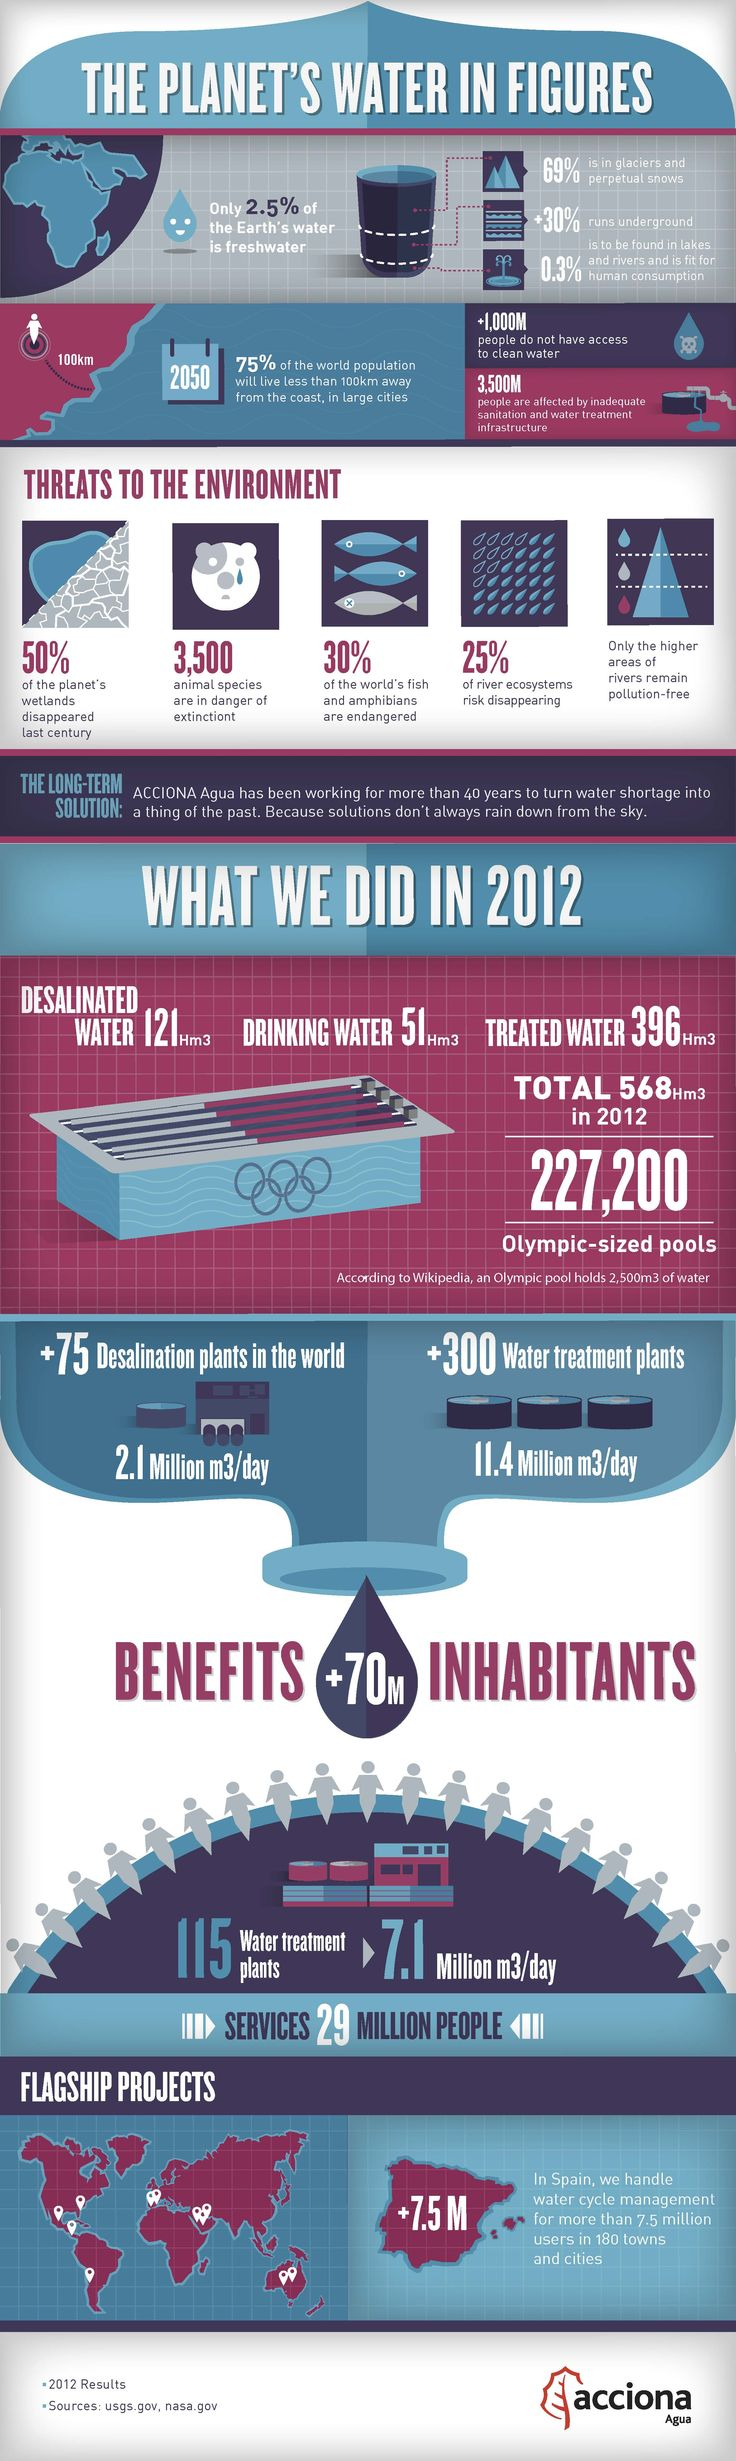 best world water day ideas world water water  this infographic explains what accionaagua does to make water shortage a thing of the past world water dayplanet